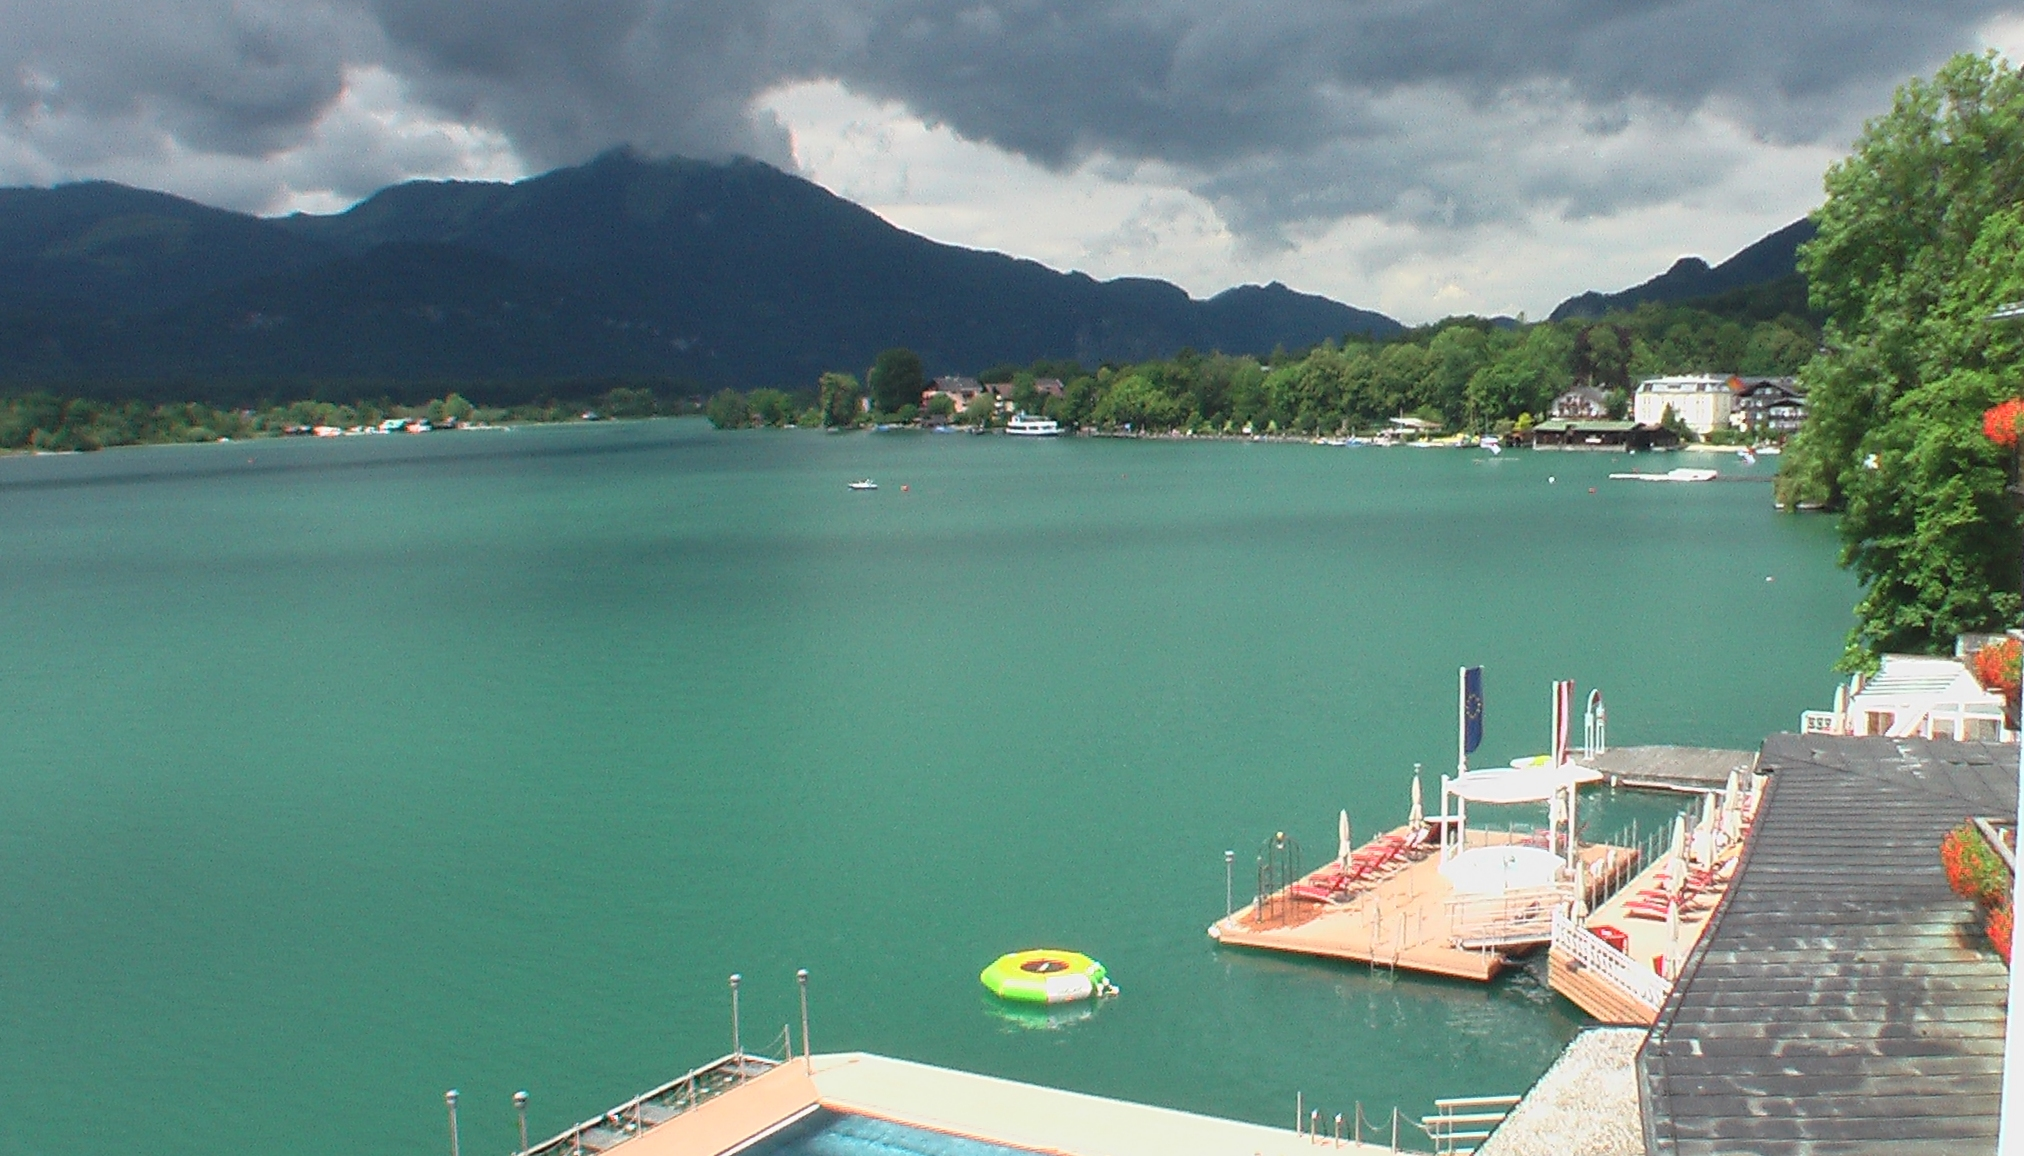 Wolfgang Weiss Bad Ischl Lake Wolfgang Wikiwand